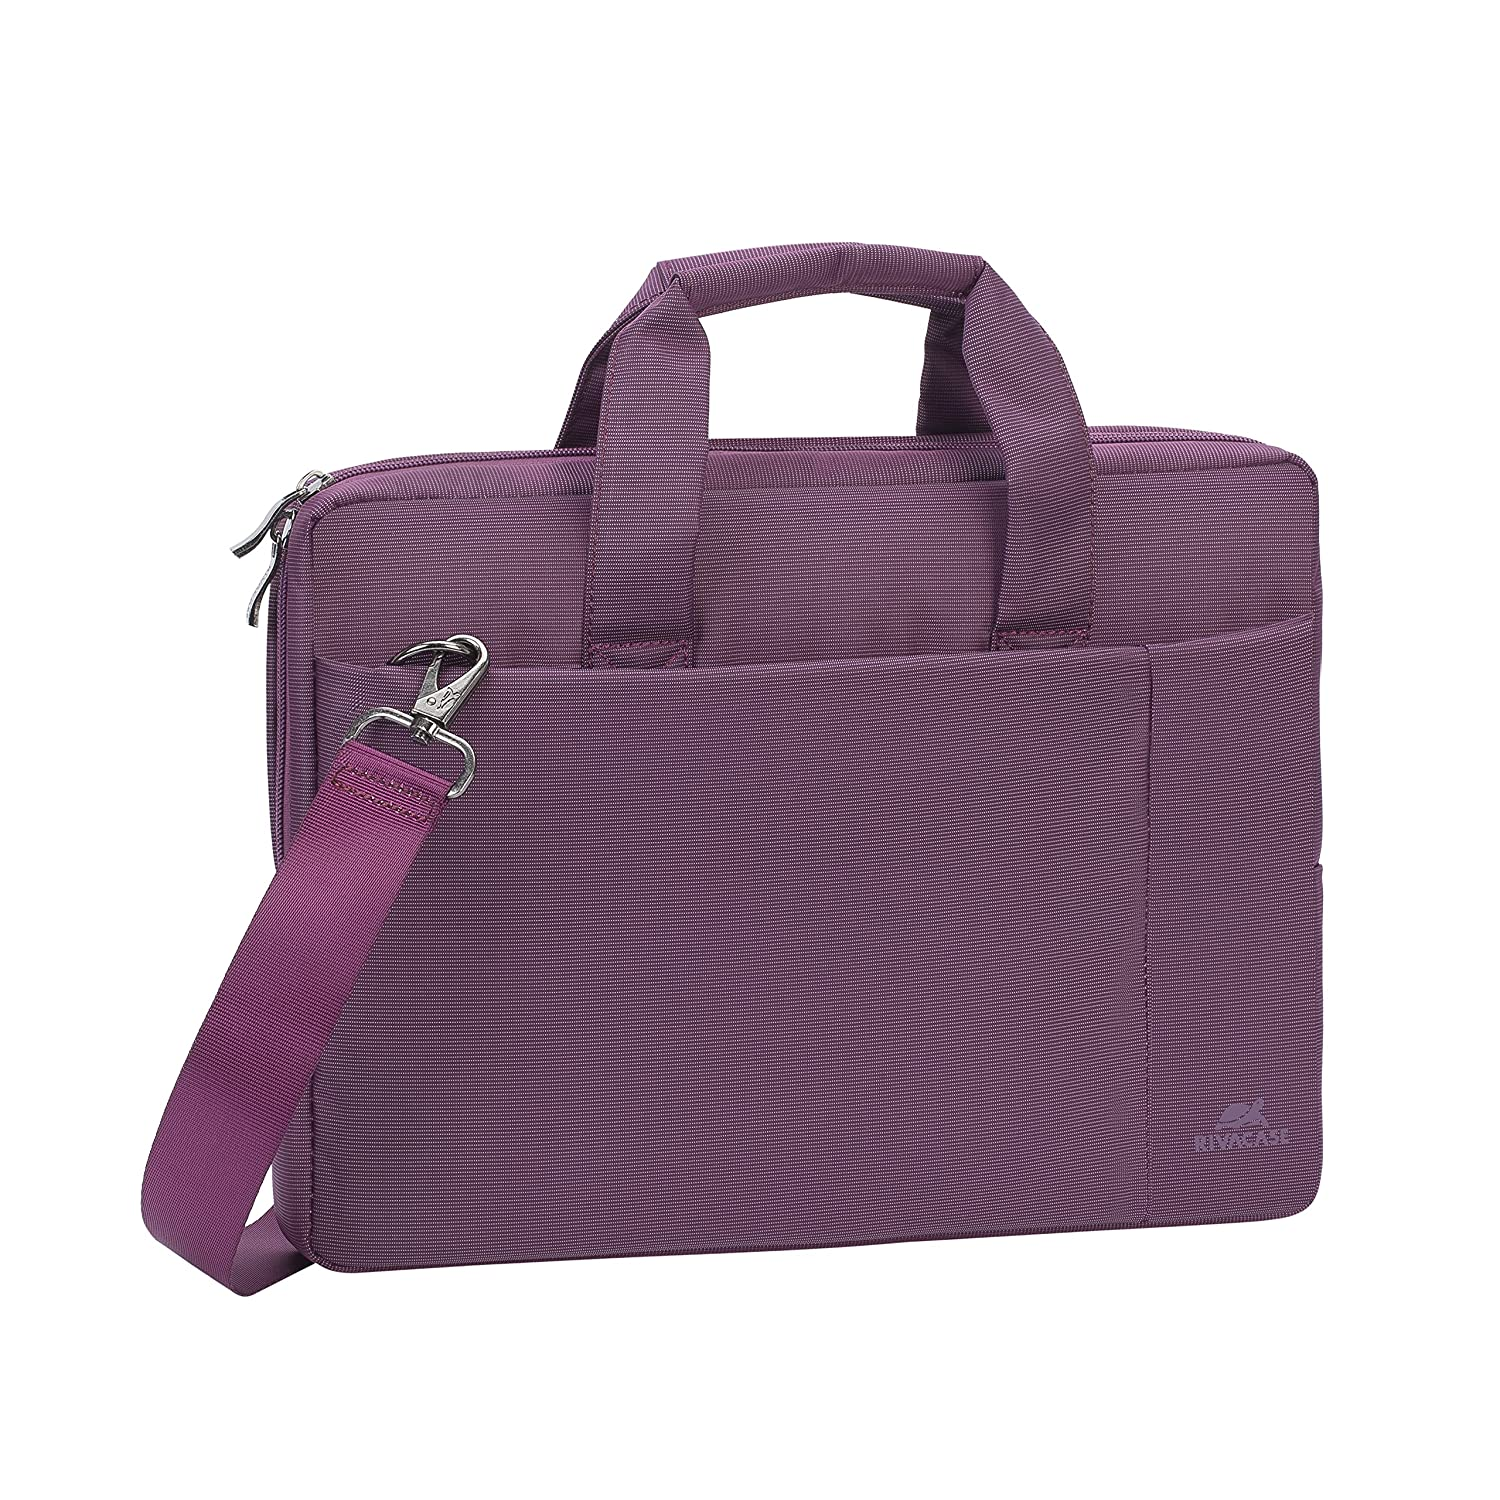 Amazon.com: Rivacase 13.3 inch Laptop Bag w/Padded Compartment for Ultrabooks, Macbook Air/Pro - Violet: Computers & Accessories